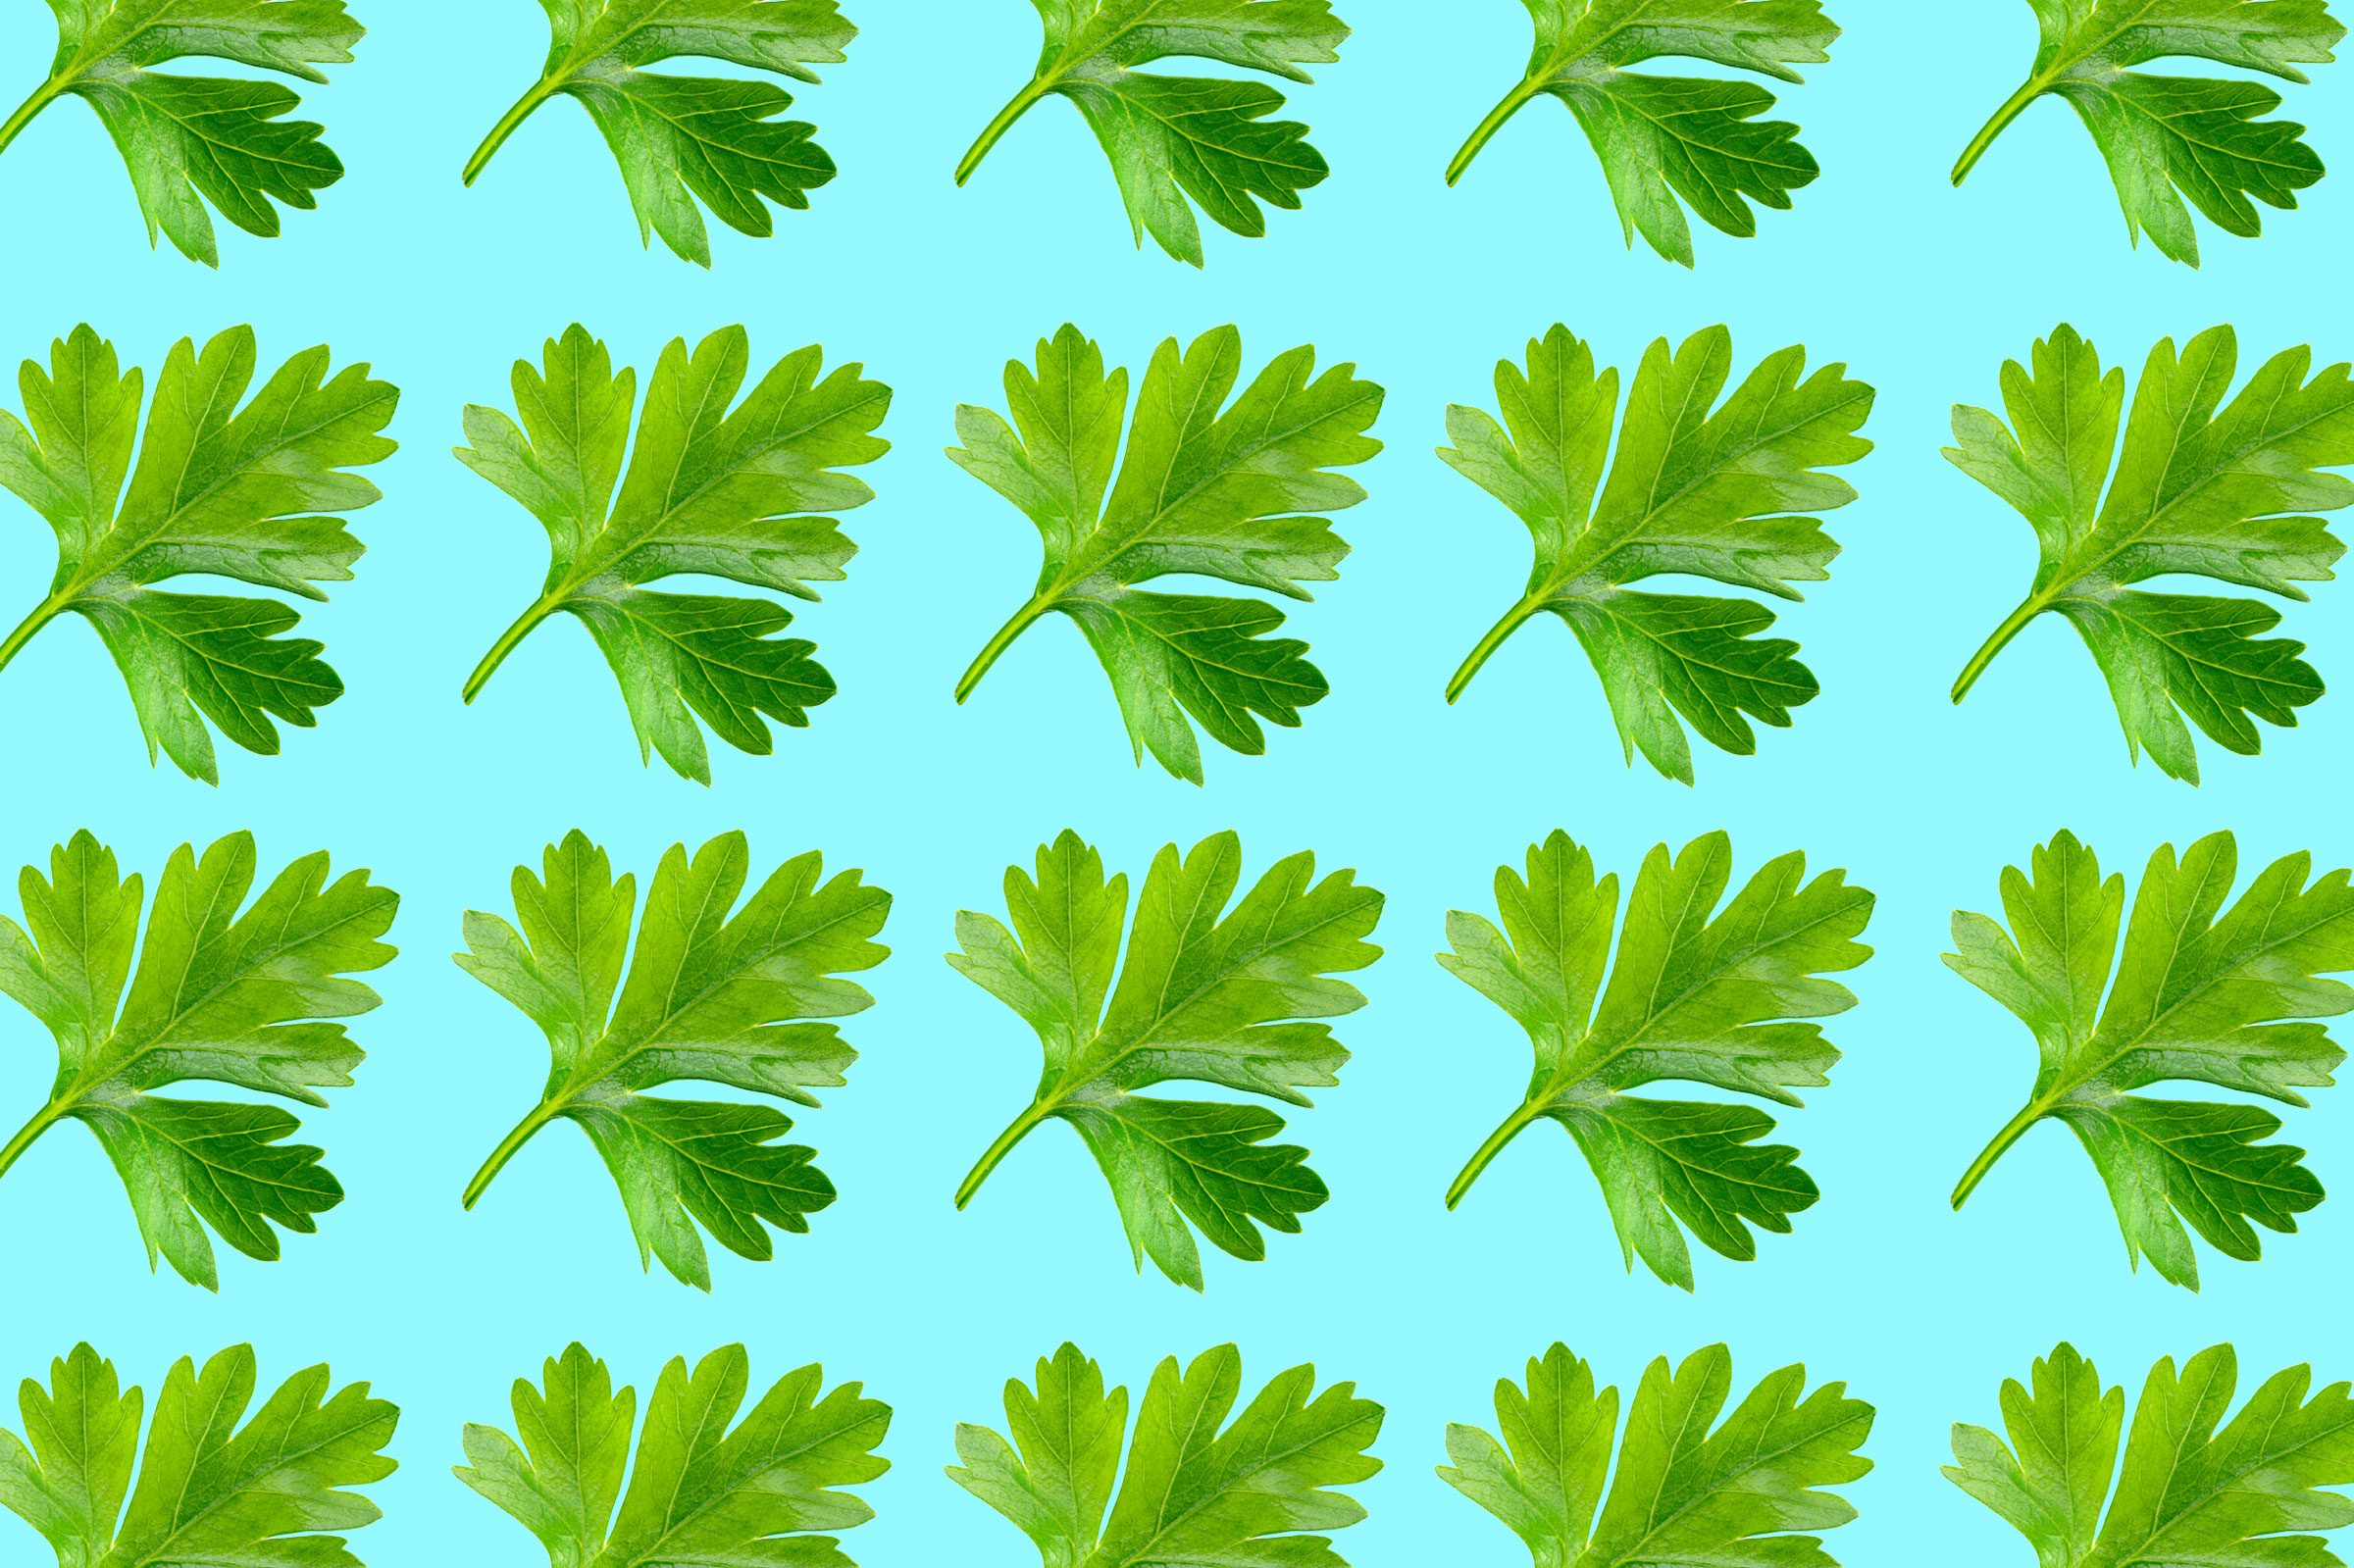 05-6-ways-to-keep-frozen-foods-fresh-parsley